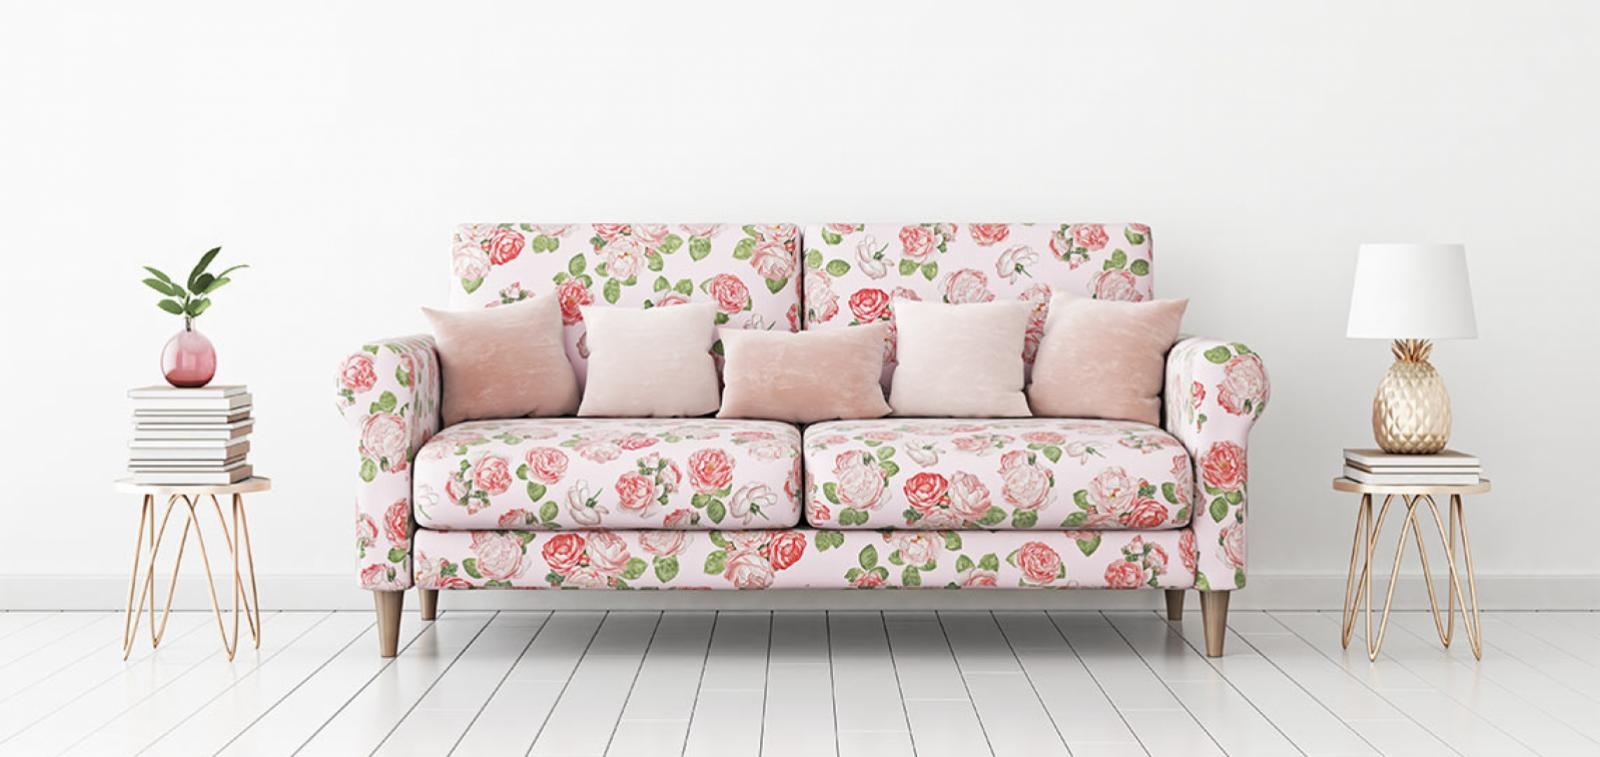 Floral pattern sofa with side tables